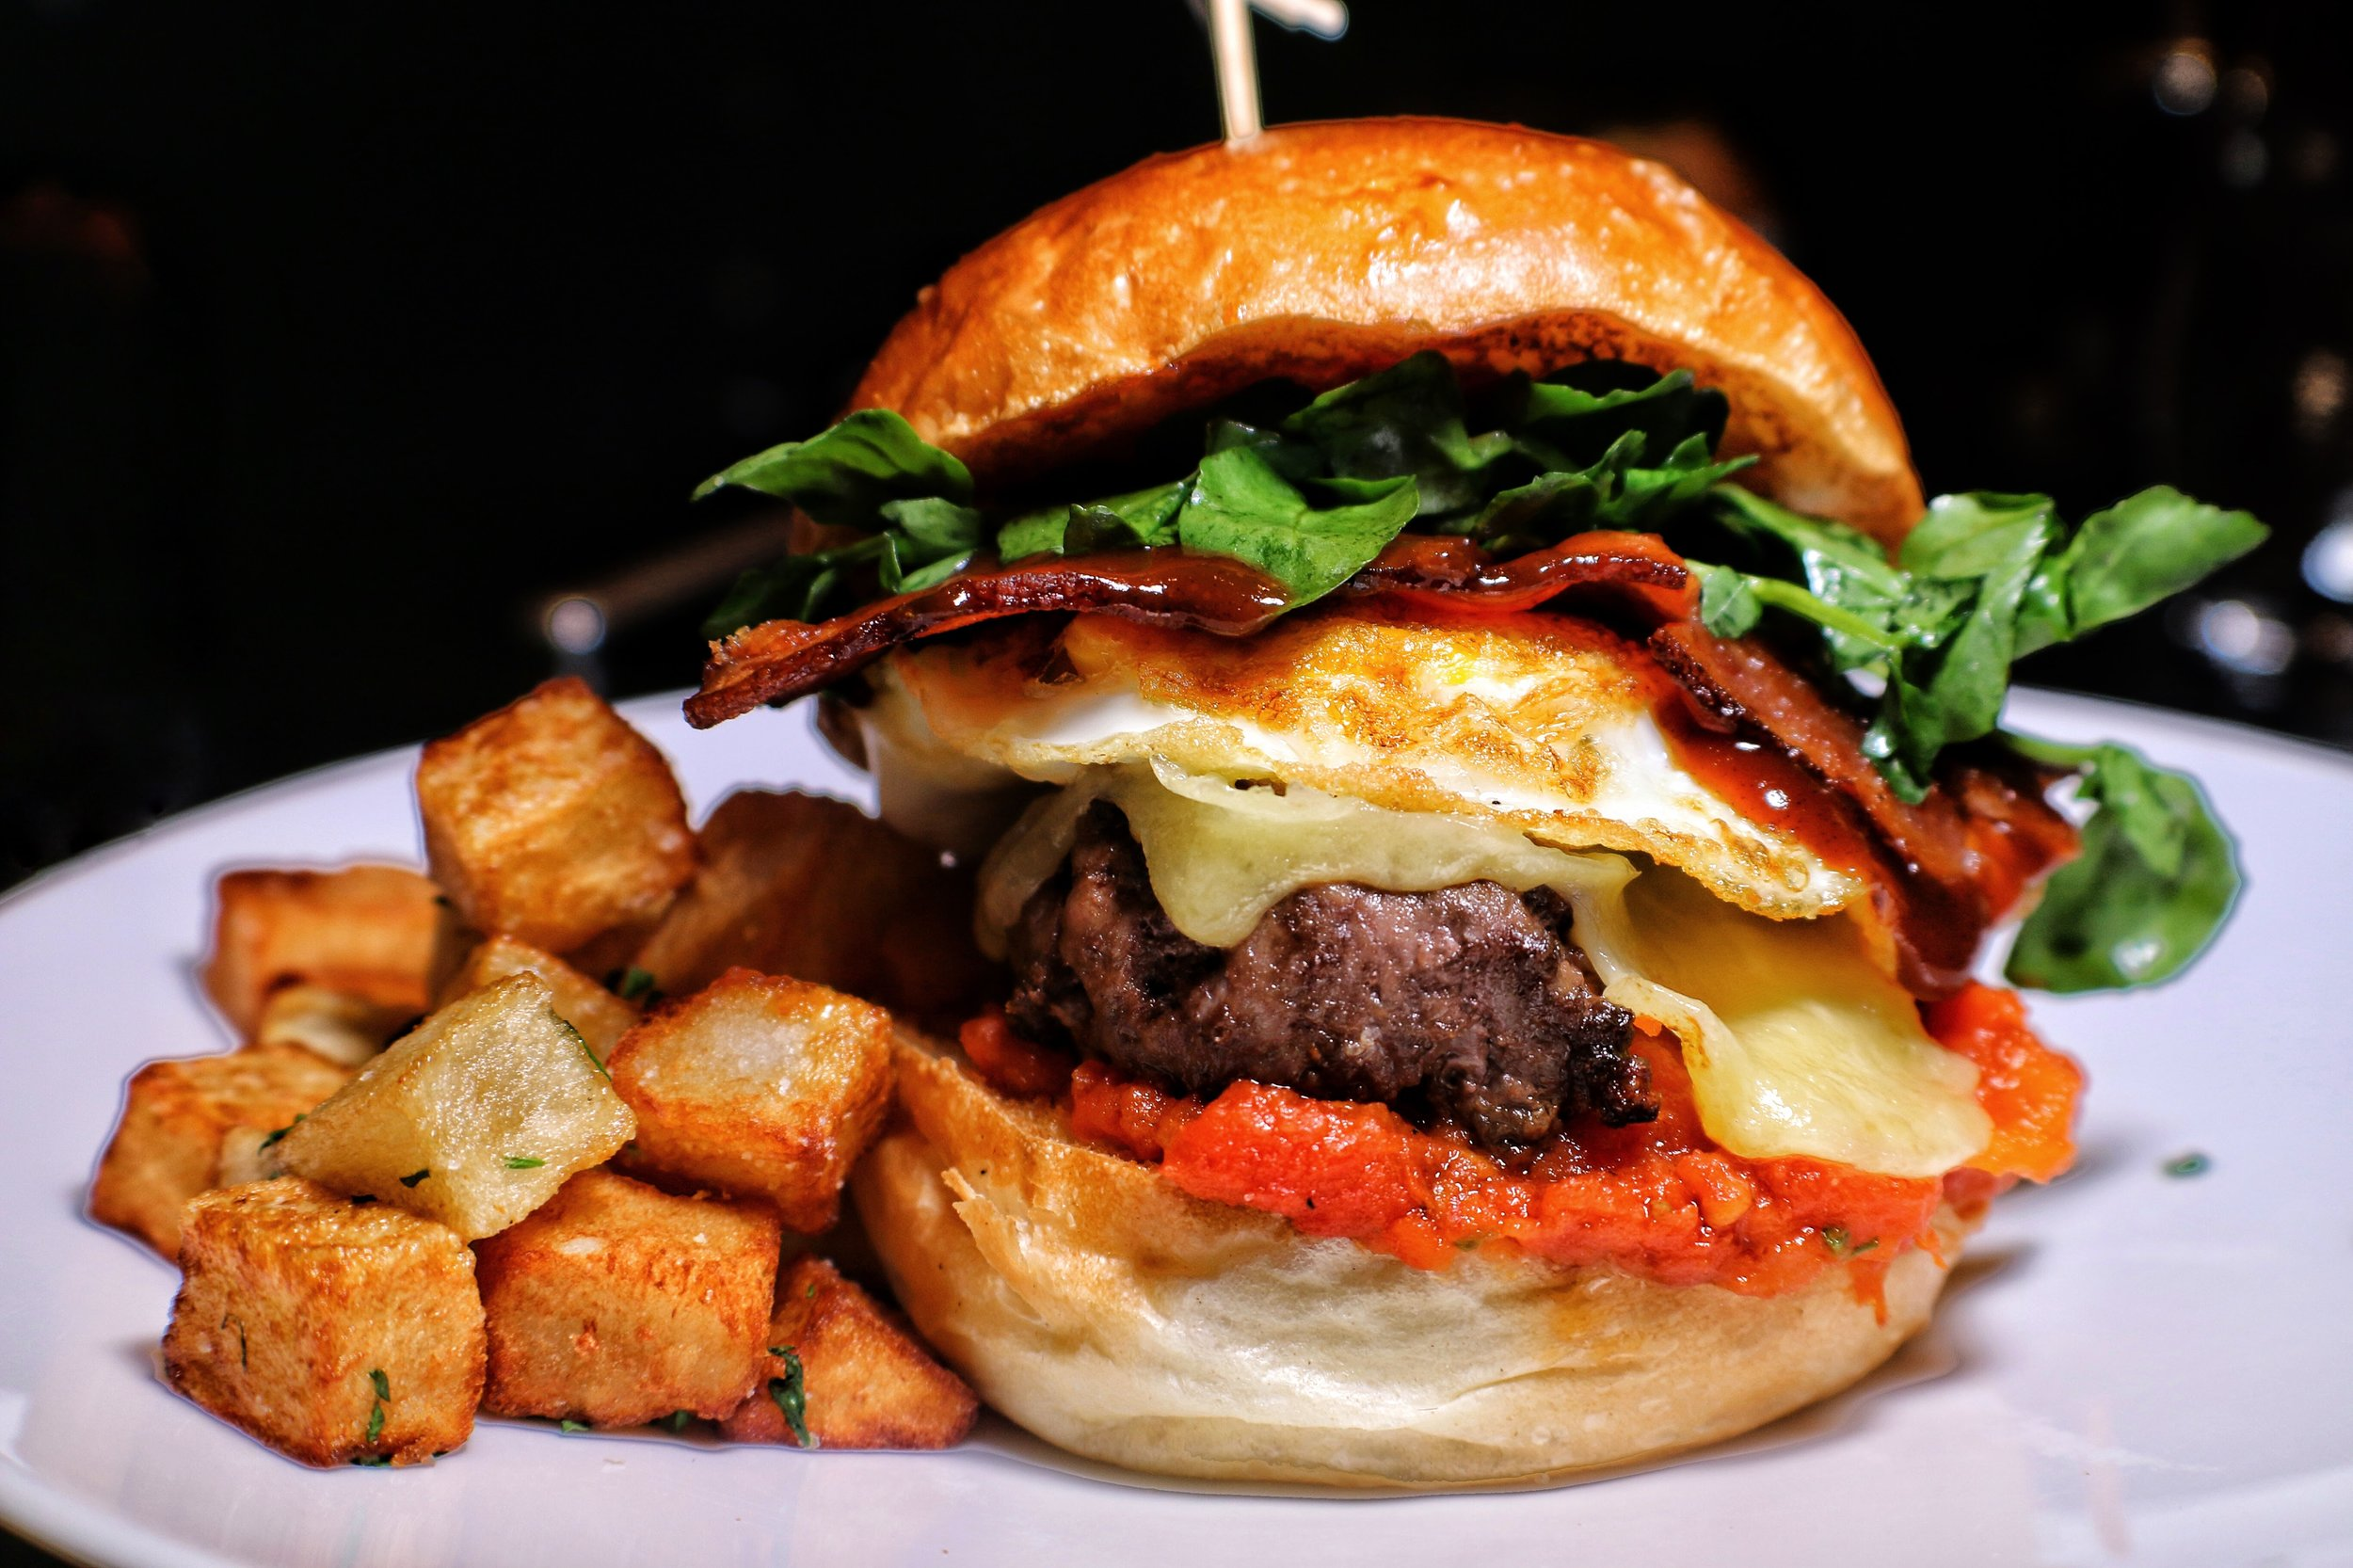 Brunch Burger, aged burger, brioche roll, fried egg, tomato jam, bacon